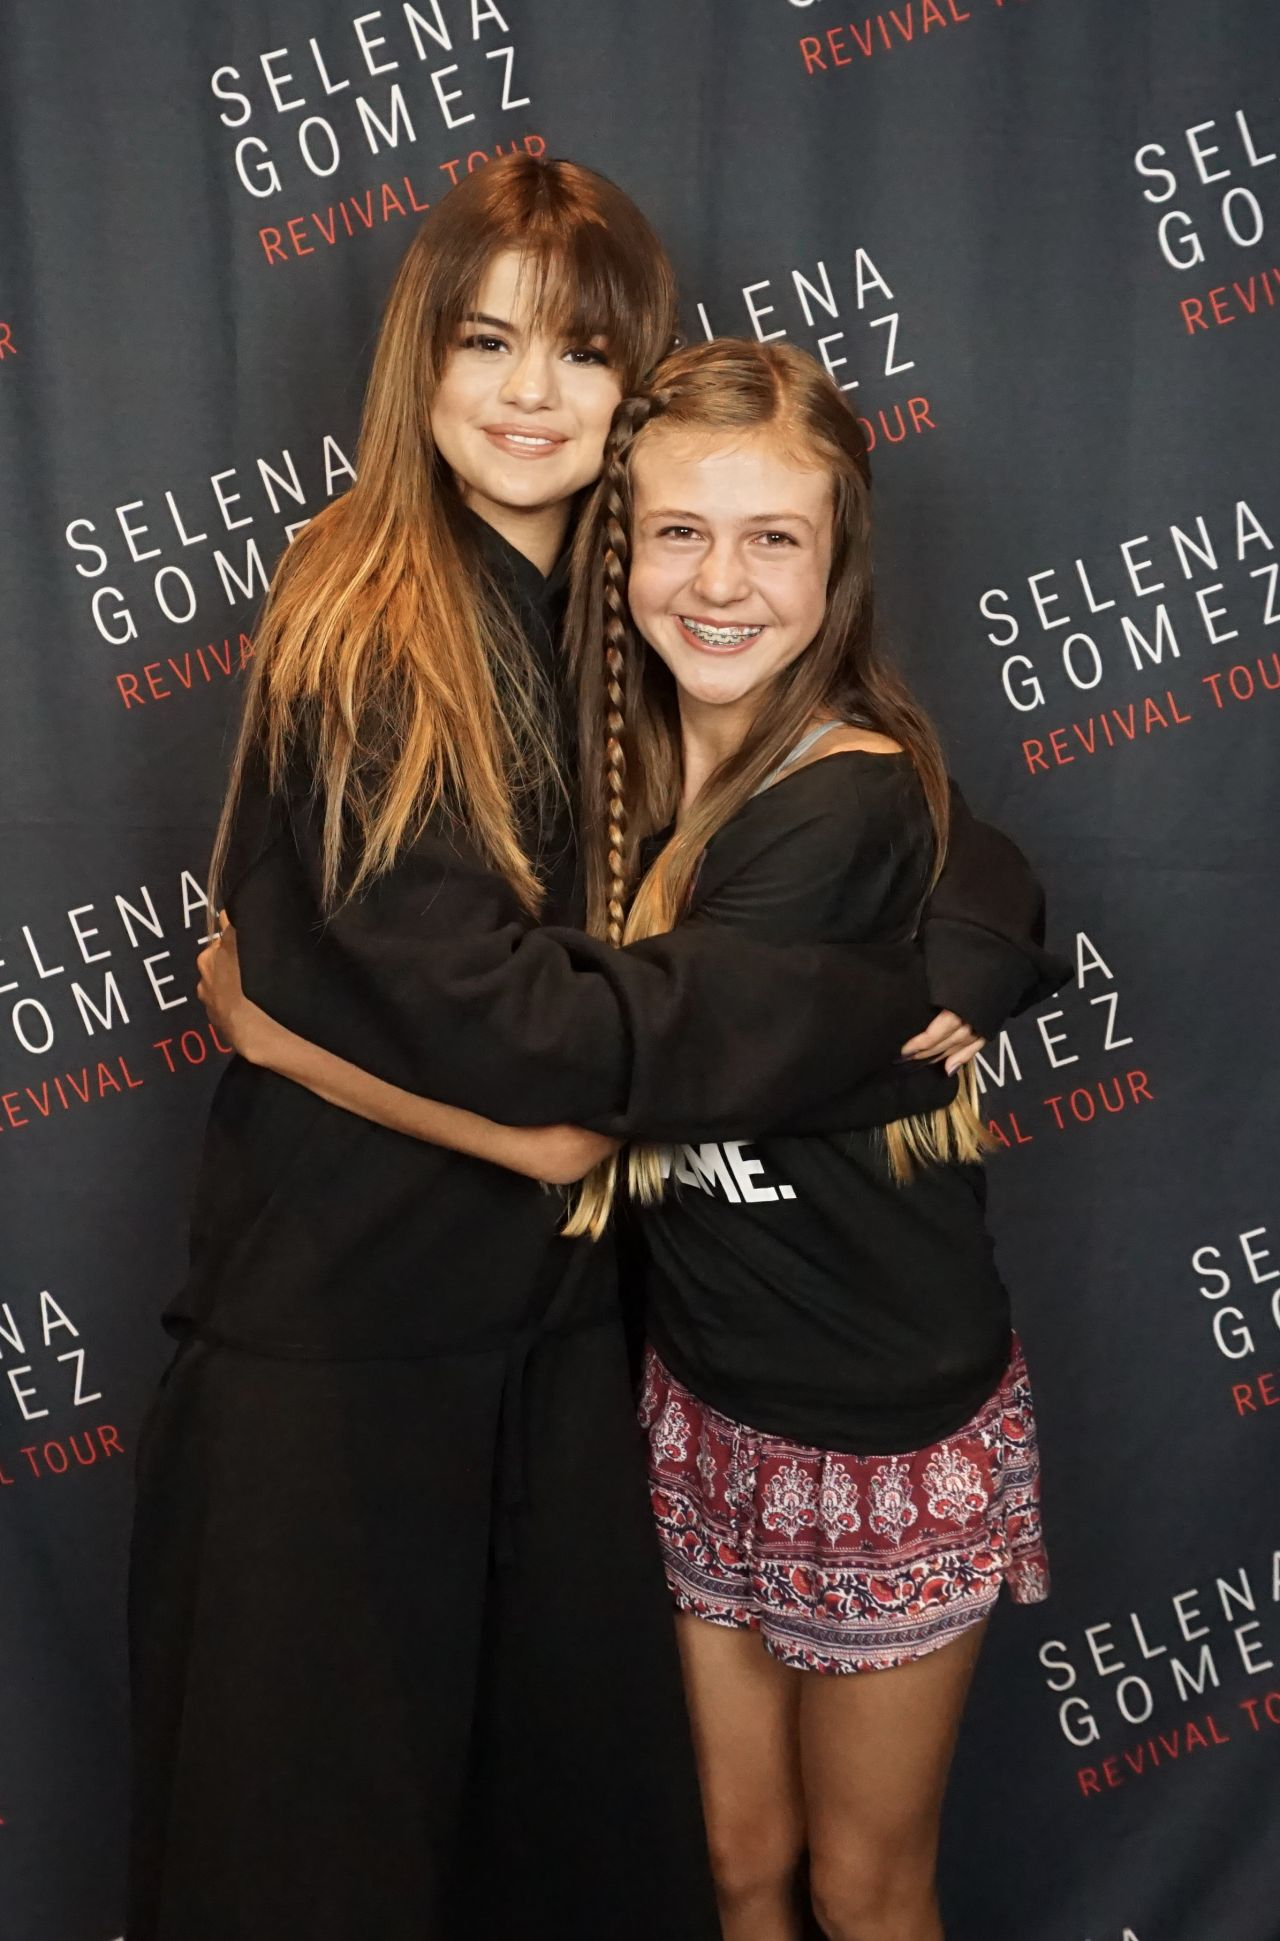 Selena Gomez Meet Greet At The Revival World Tour At The Xcel